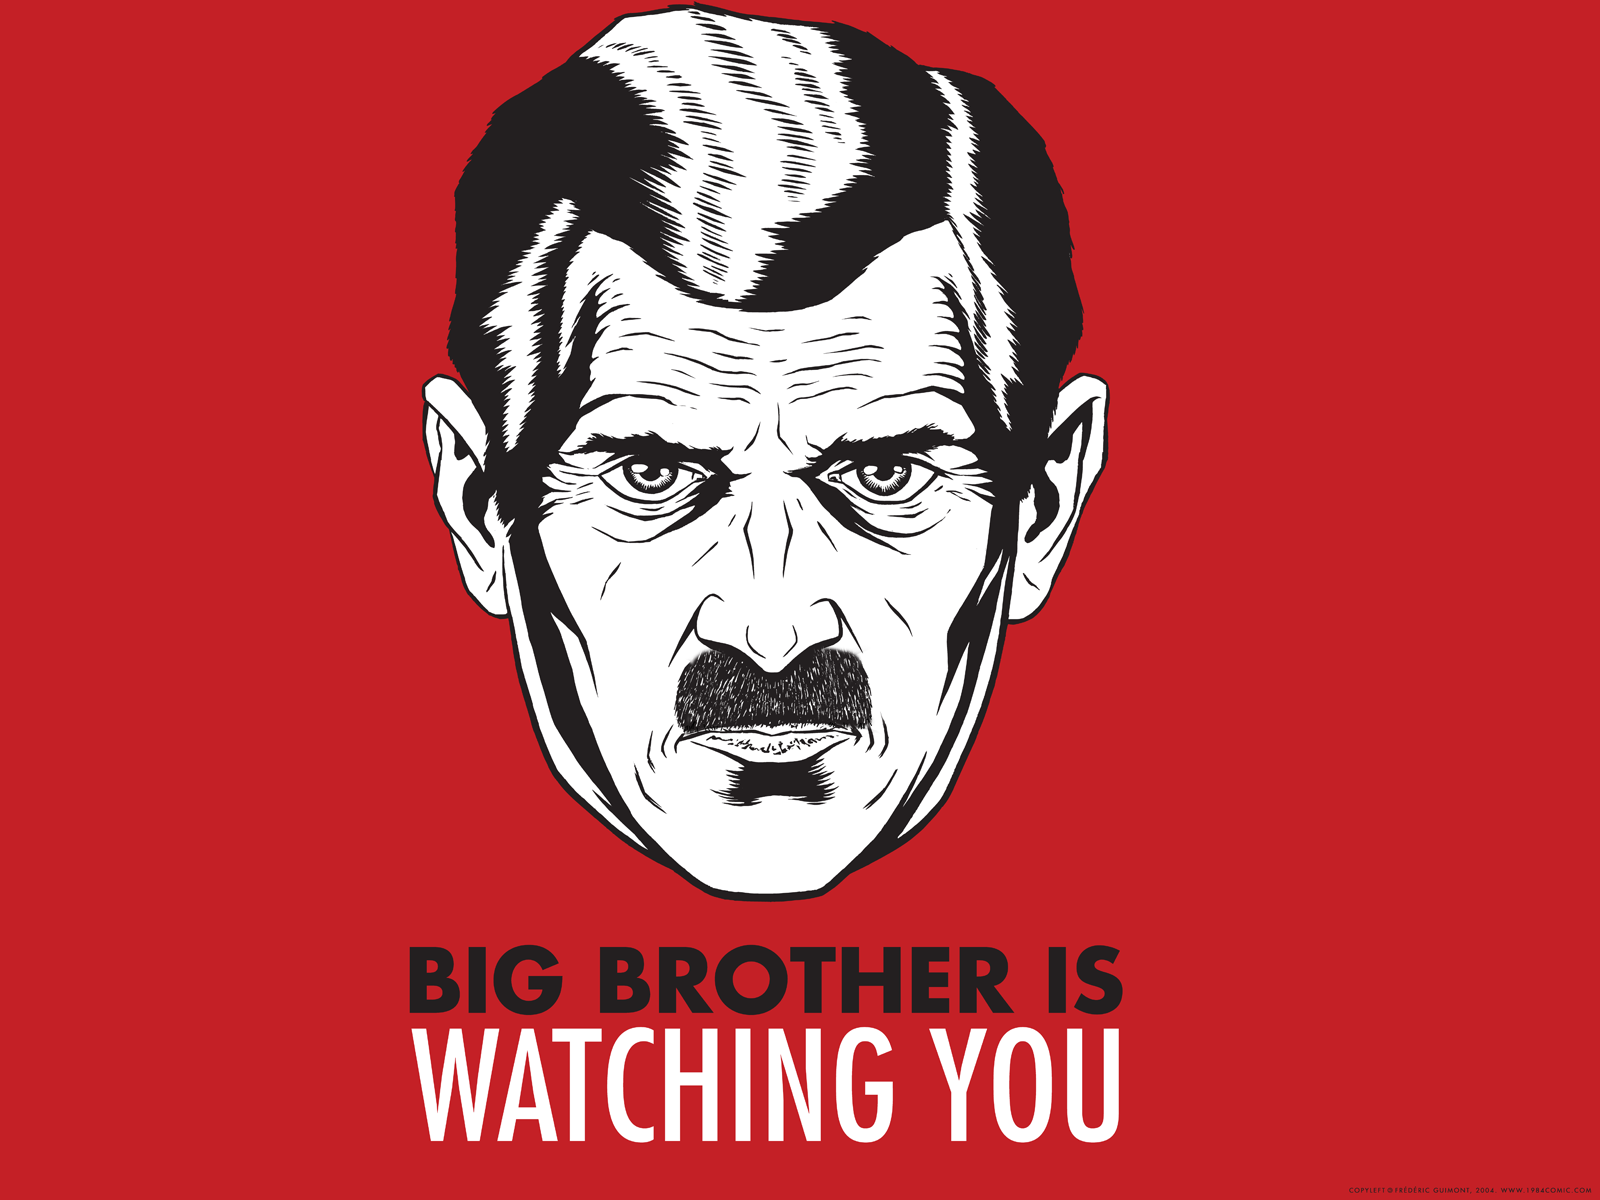 http://labs.sogeti.com/wp-content/uploads/2014/06/big-brother-is-watching-you.png